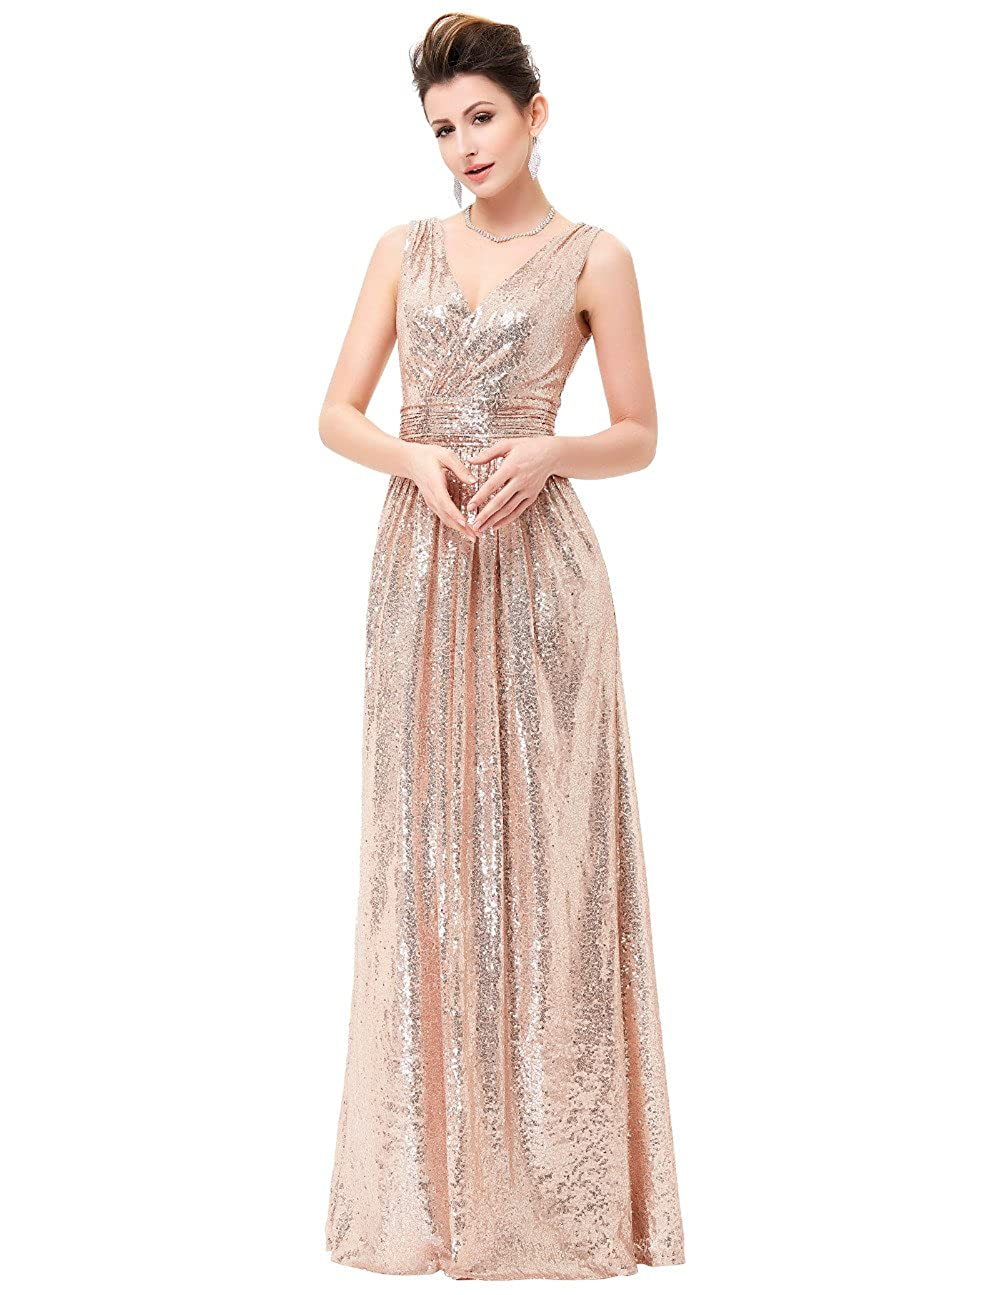 Kaitaijidian Womens Long Sequin Evening Dres Party Formal Prom Dresses - Gold - 18: Amazon.co.uk: Clothing